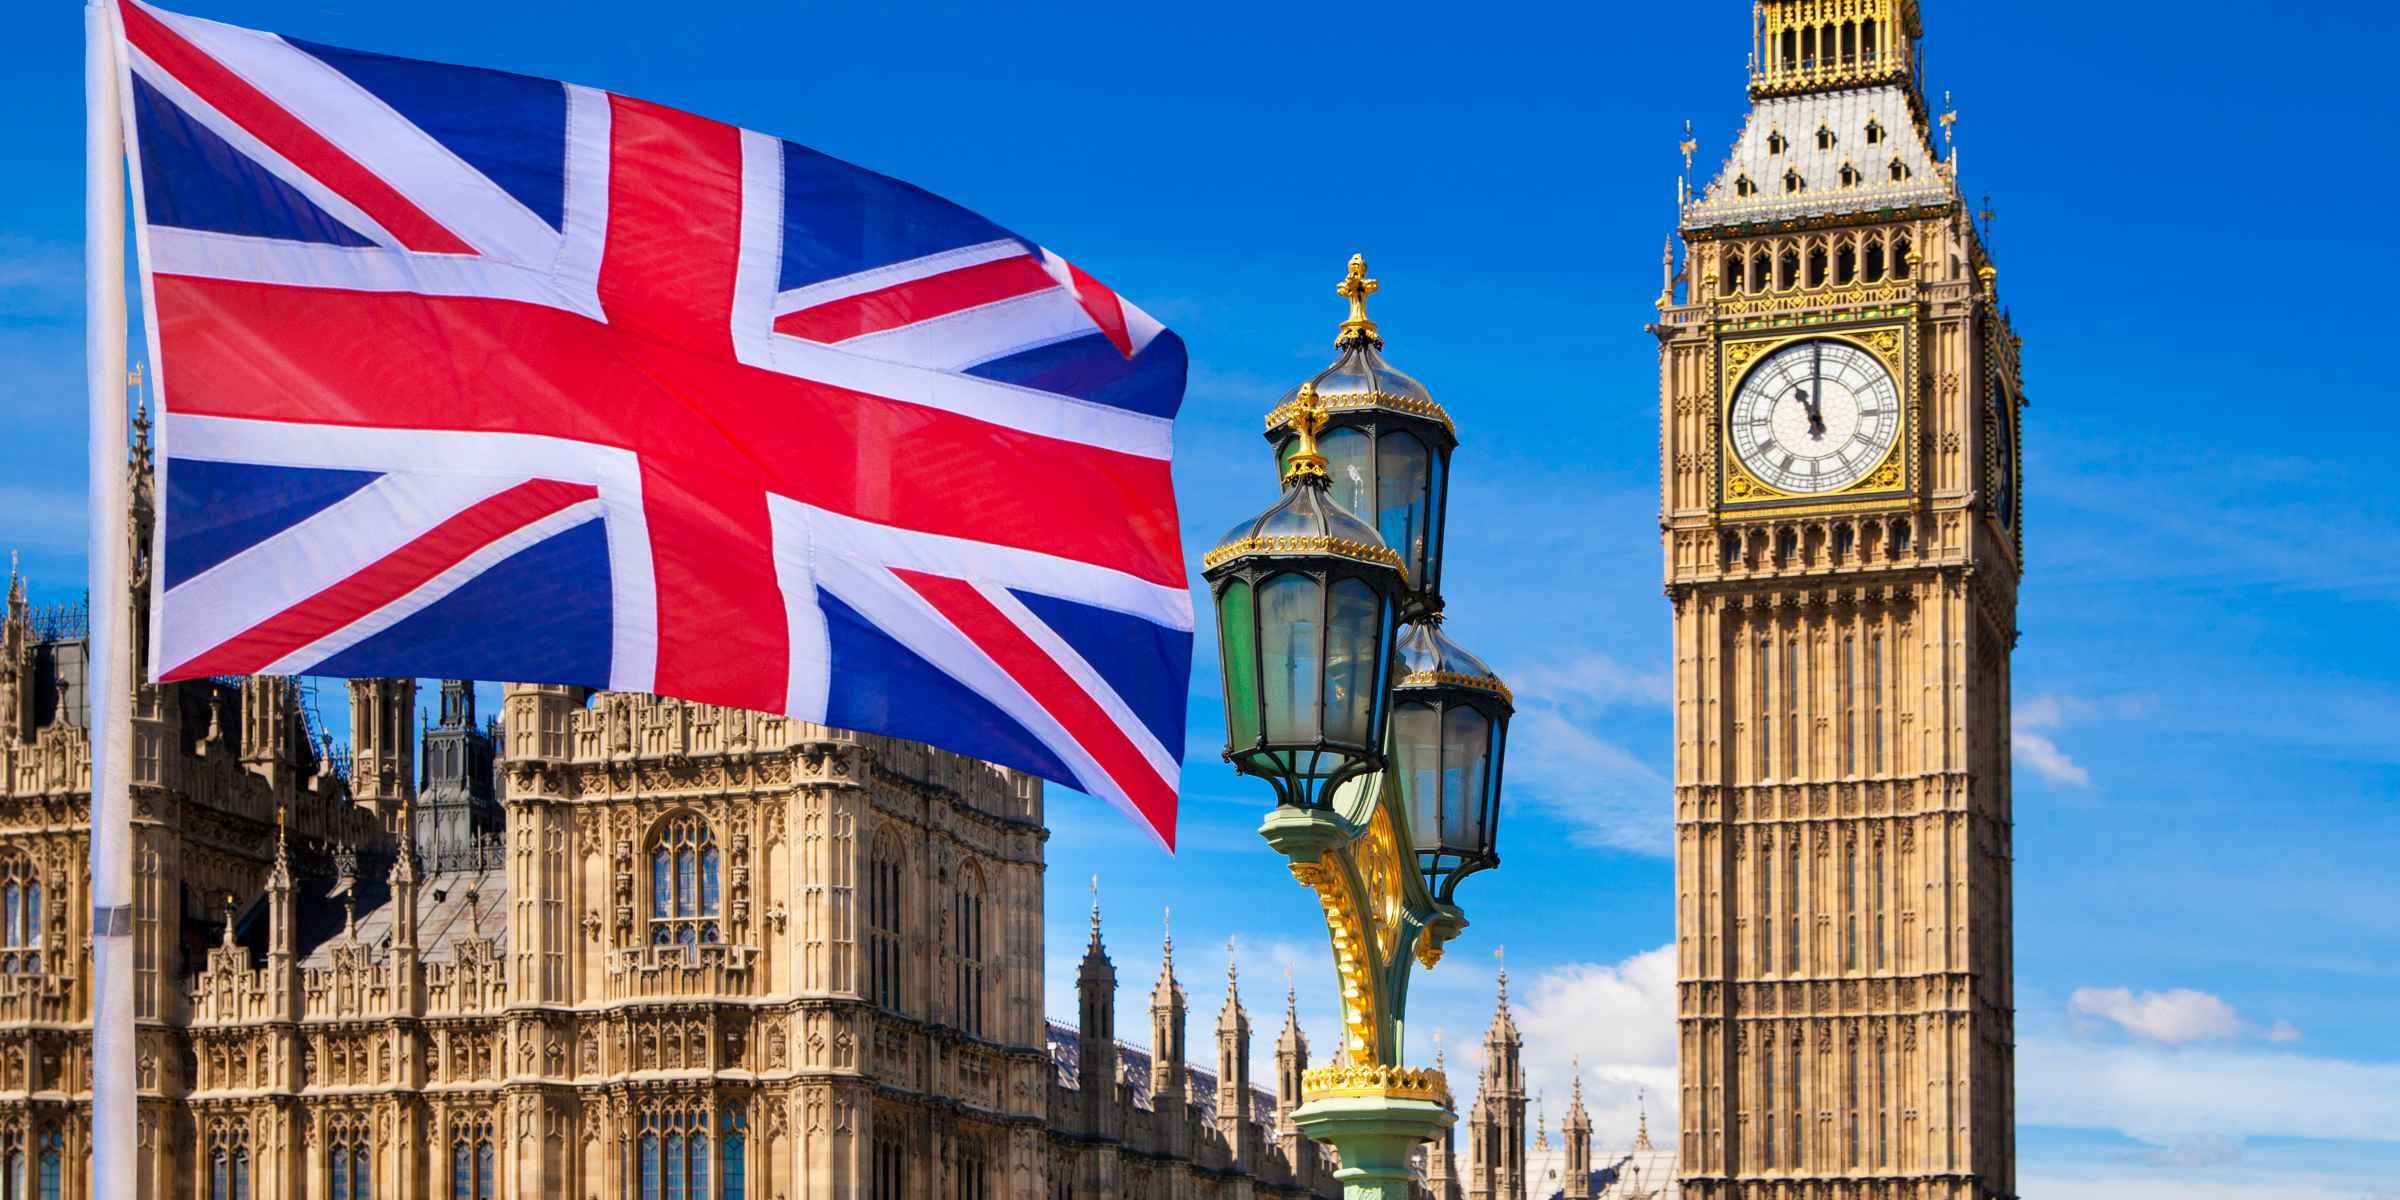 London Tours & England Vacations | London Vacation Packages